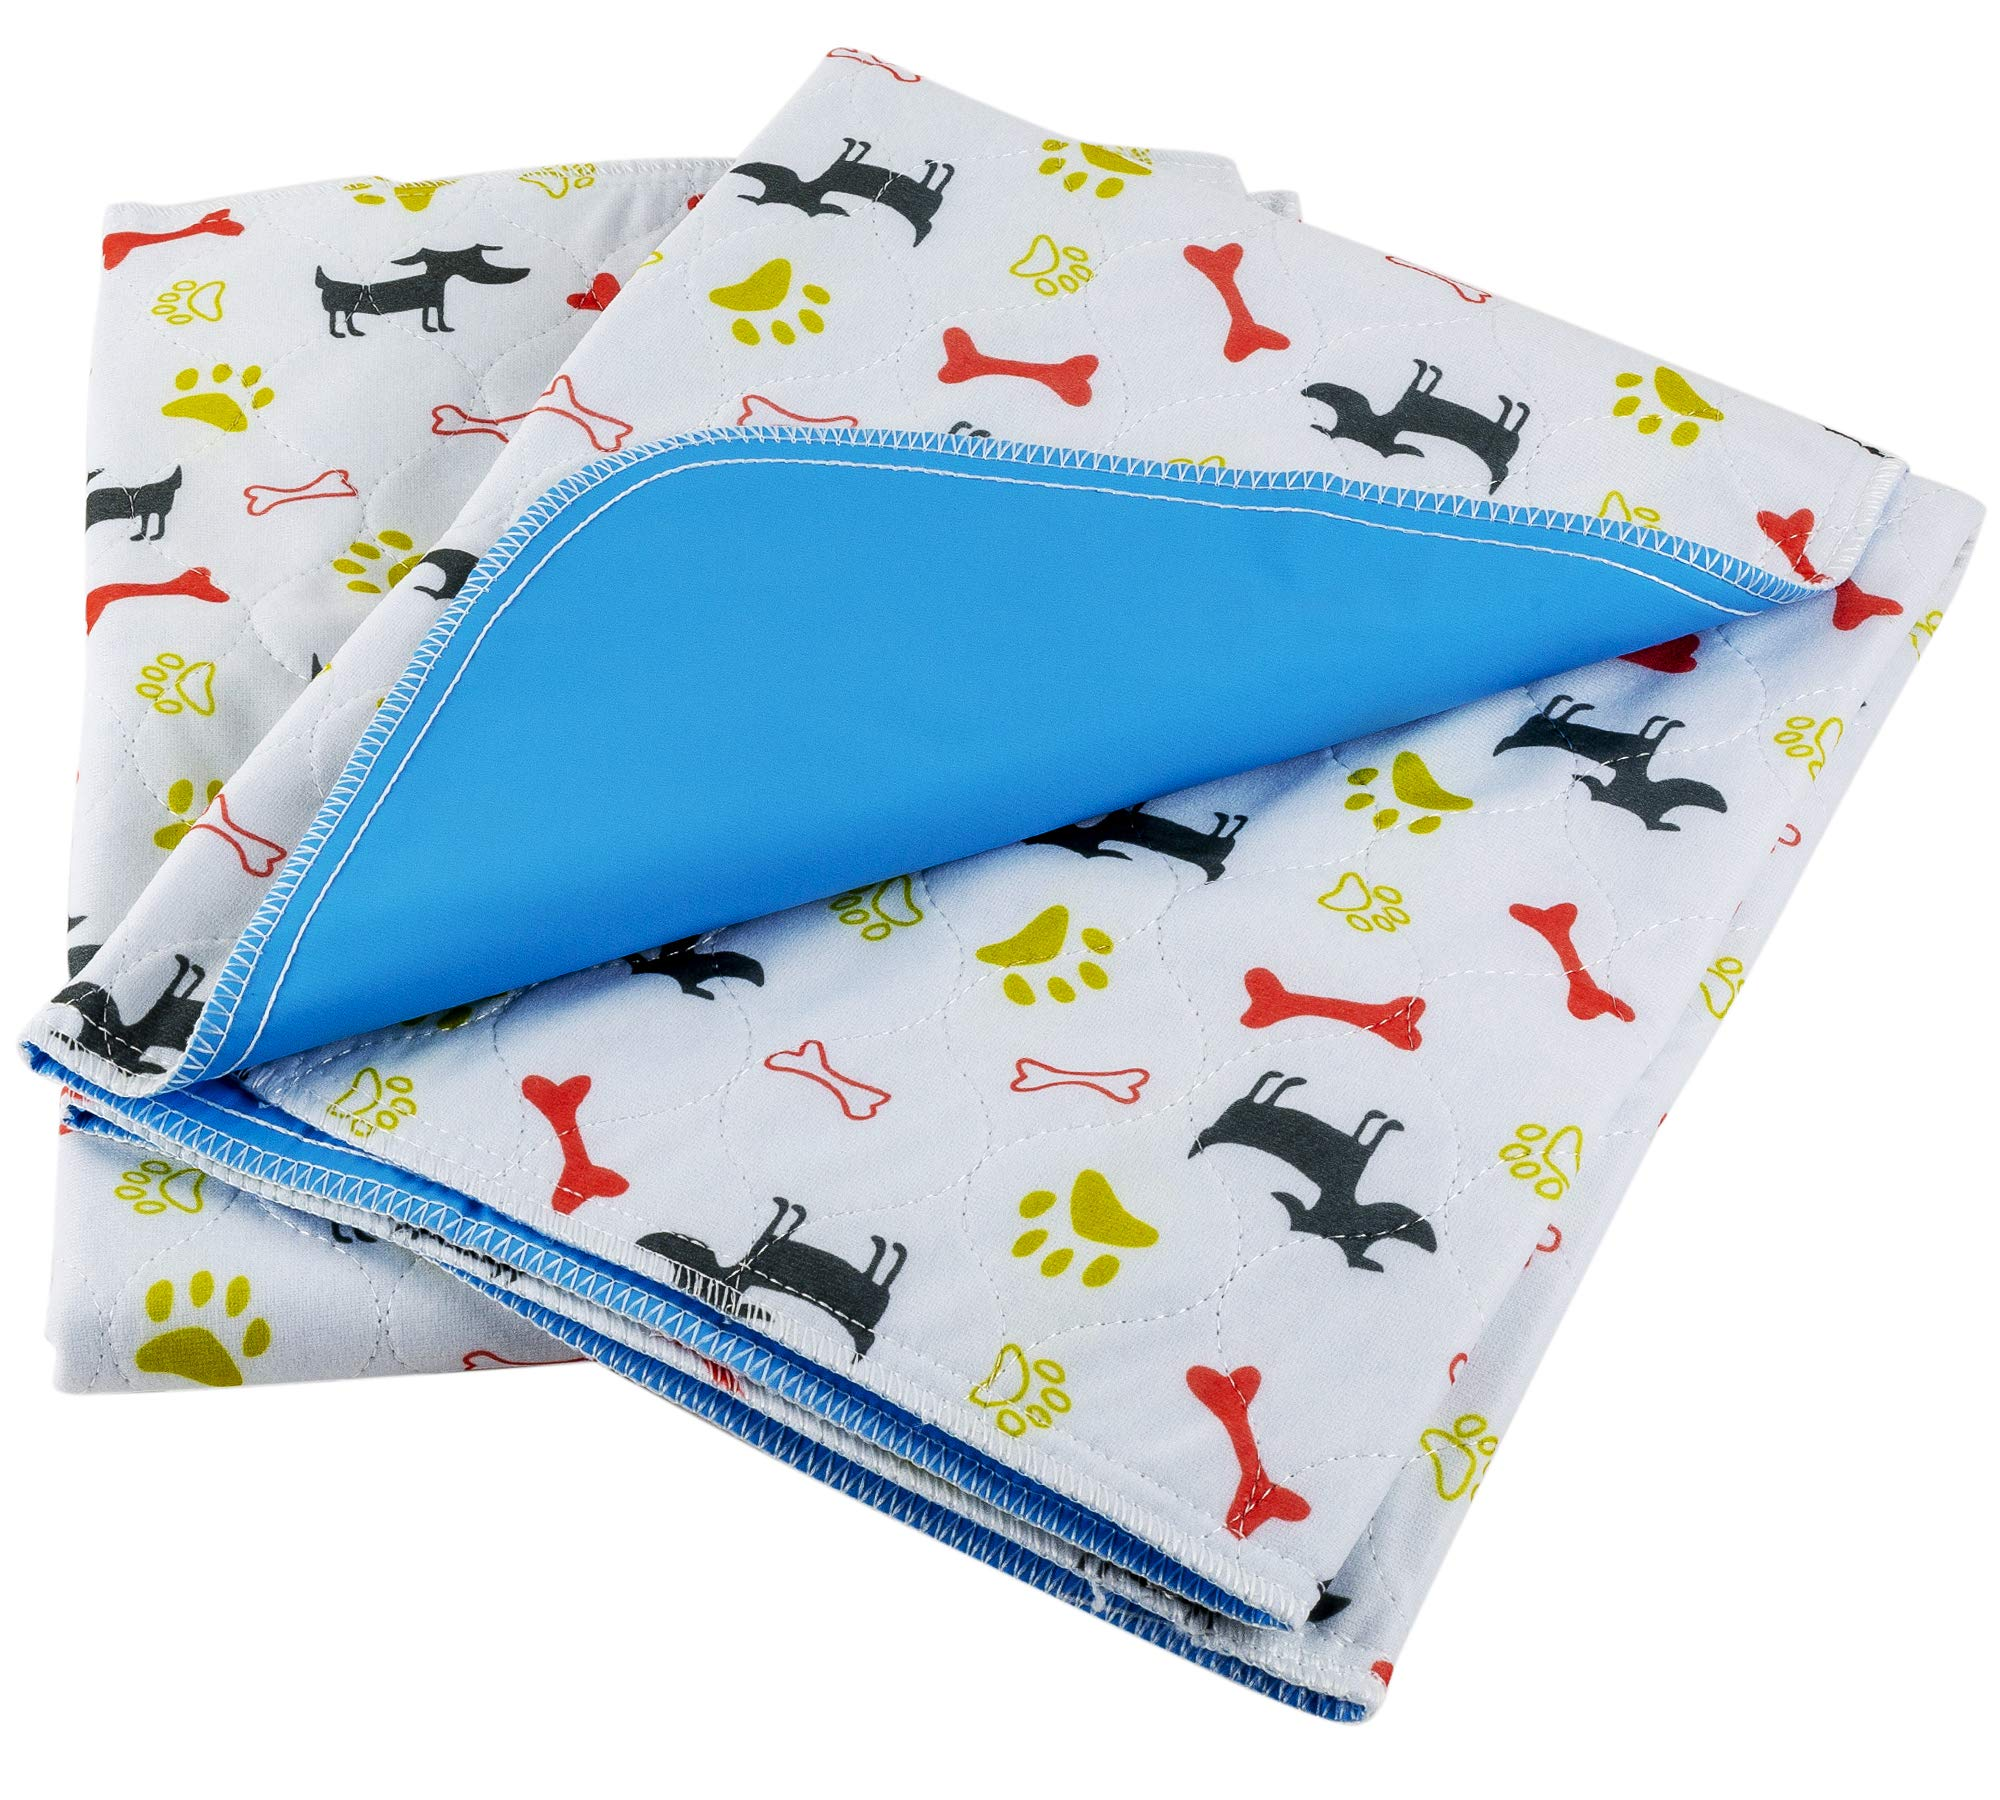 ChewieMac Washable Pee Pads for Dogs (2-Pack) Large, Reusable Puppy & Pet Training Floor Mats   Waterproof, Super Absorbent, Leakproof   Whelping, Potty, and Crate Use